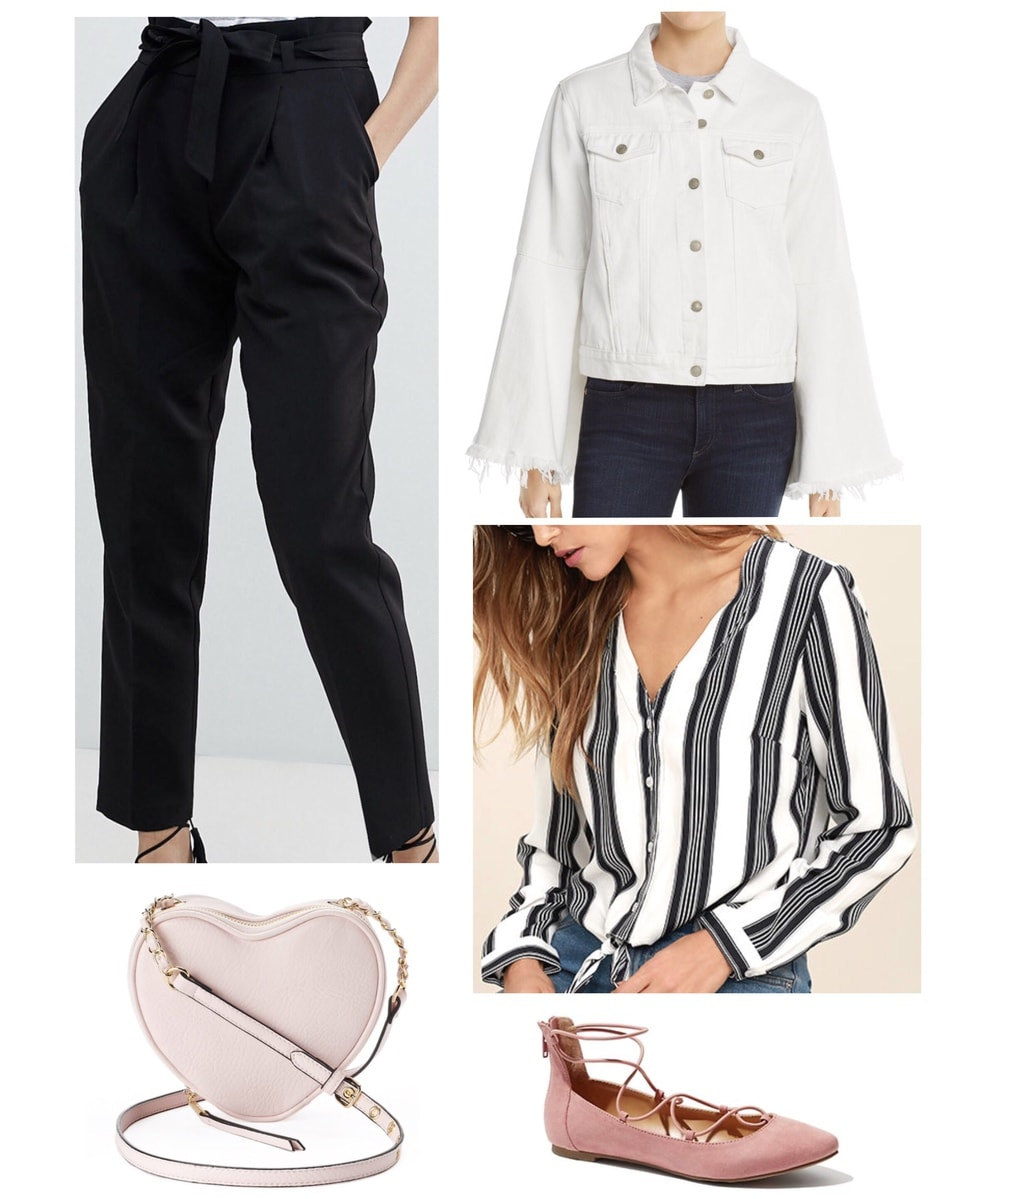 White denim jacket styled with paper-bag trousers and blouse